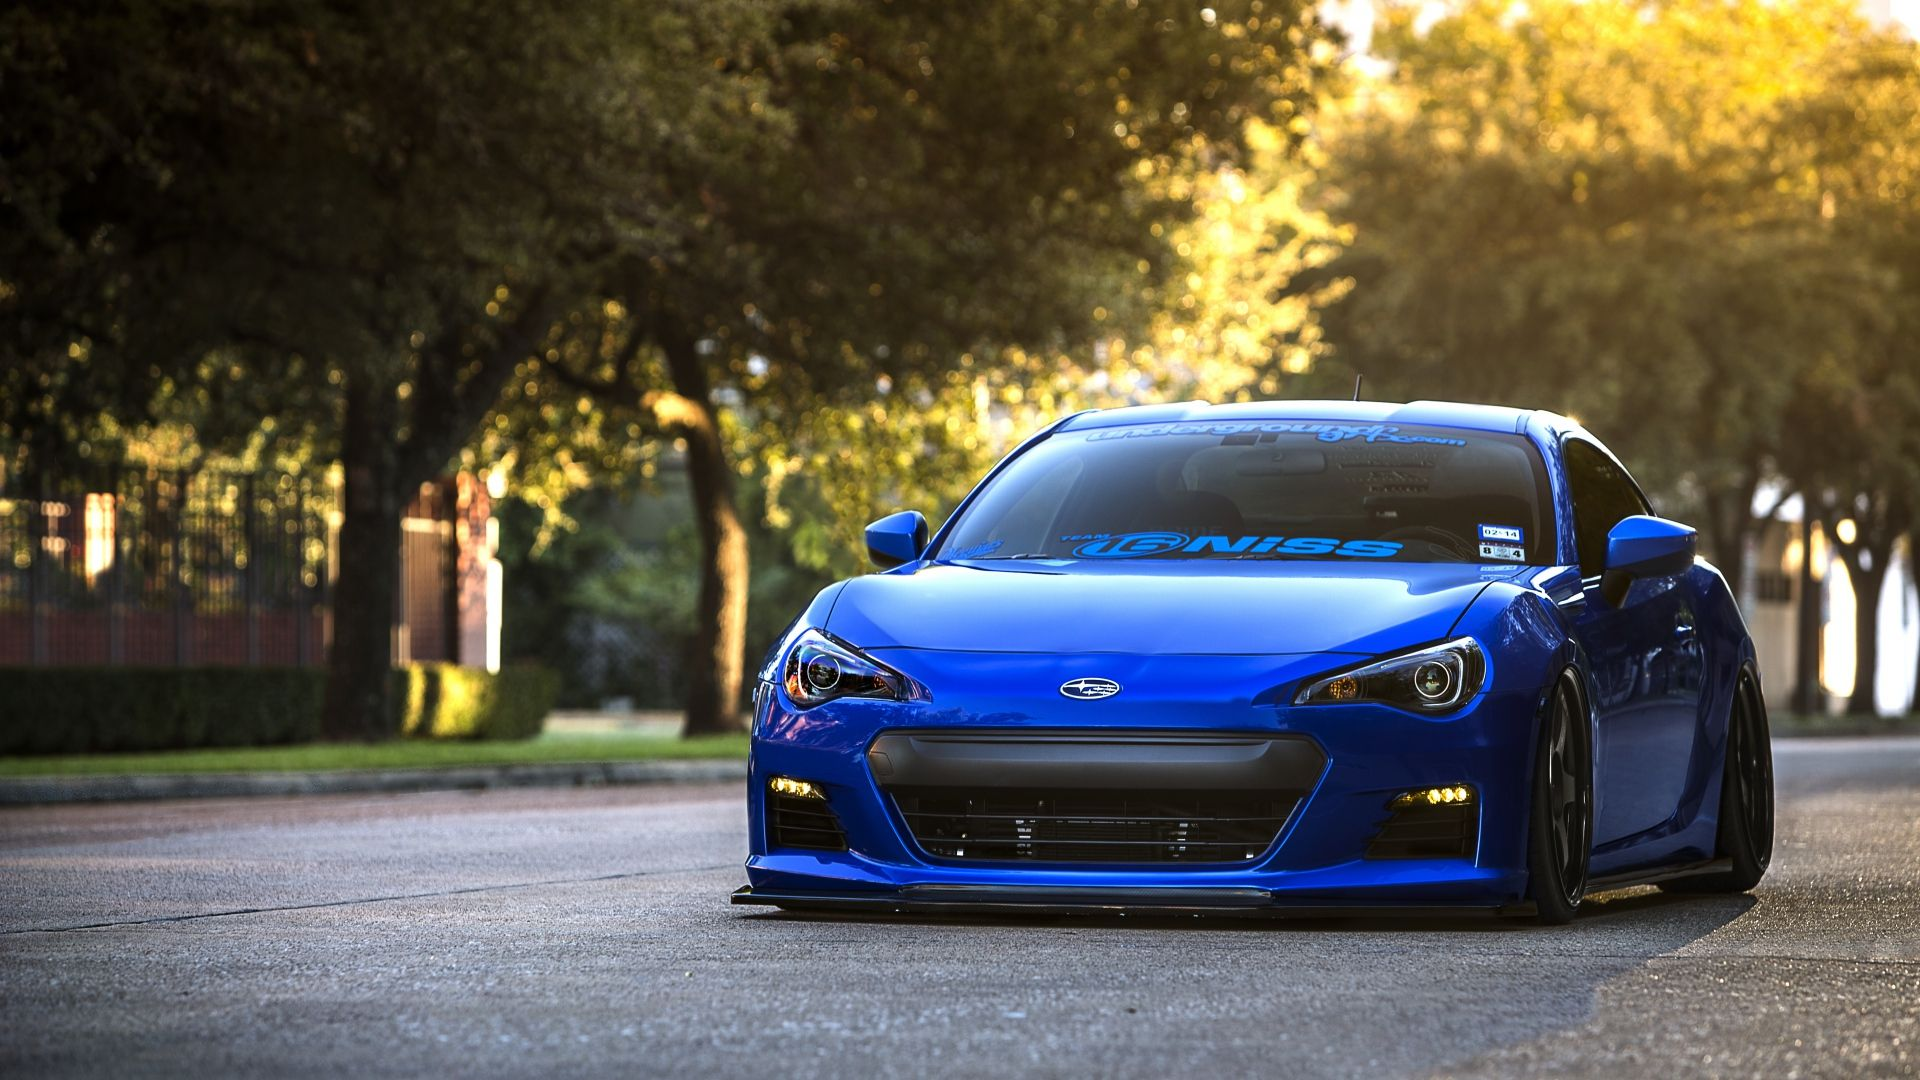 Subaru Sports Car Wallpapers Picture With Hd Desktop X  Kb